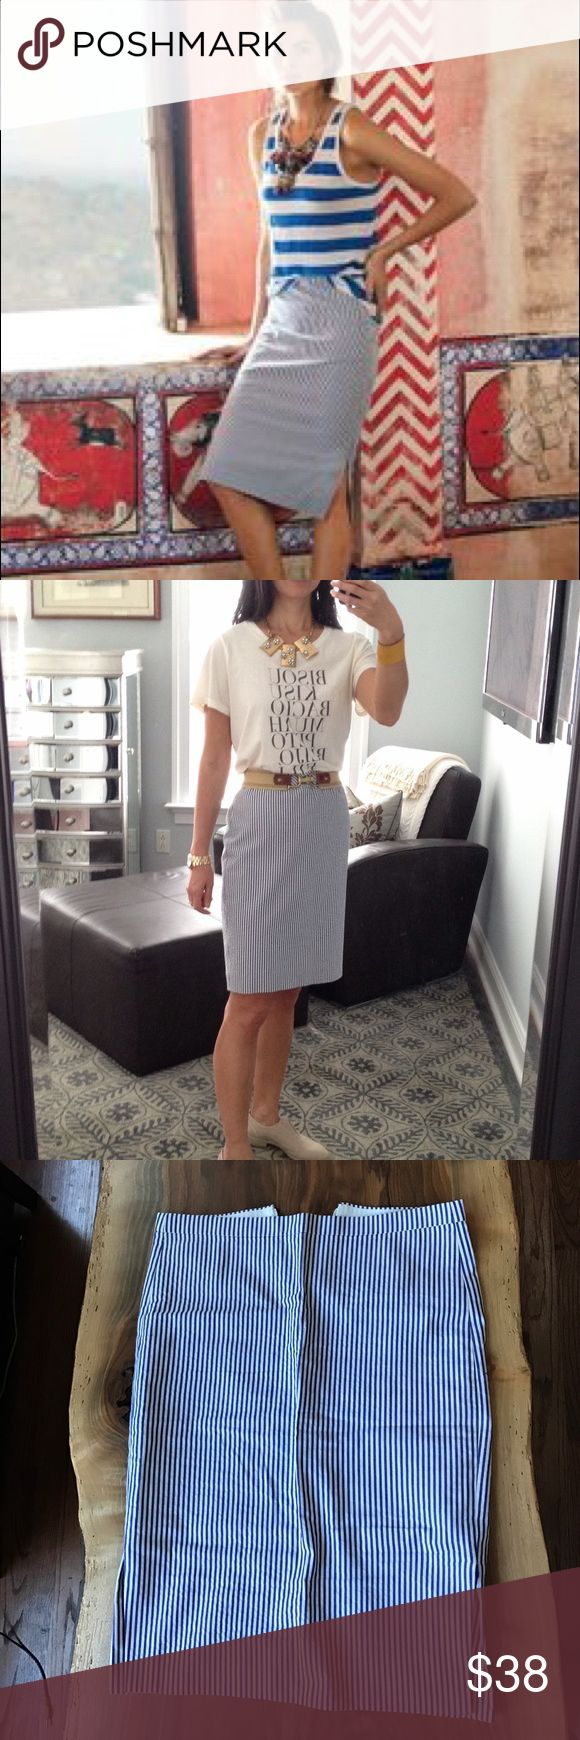 1000 ideas about striped pencil skirts on